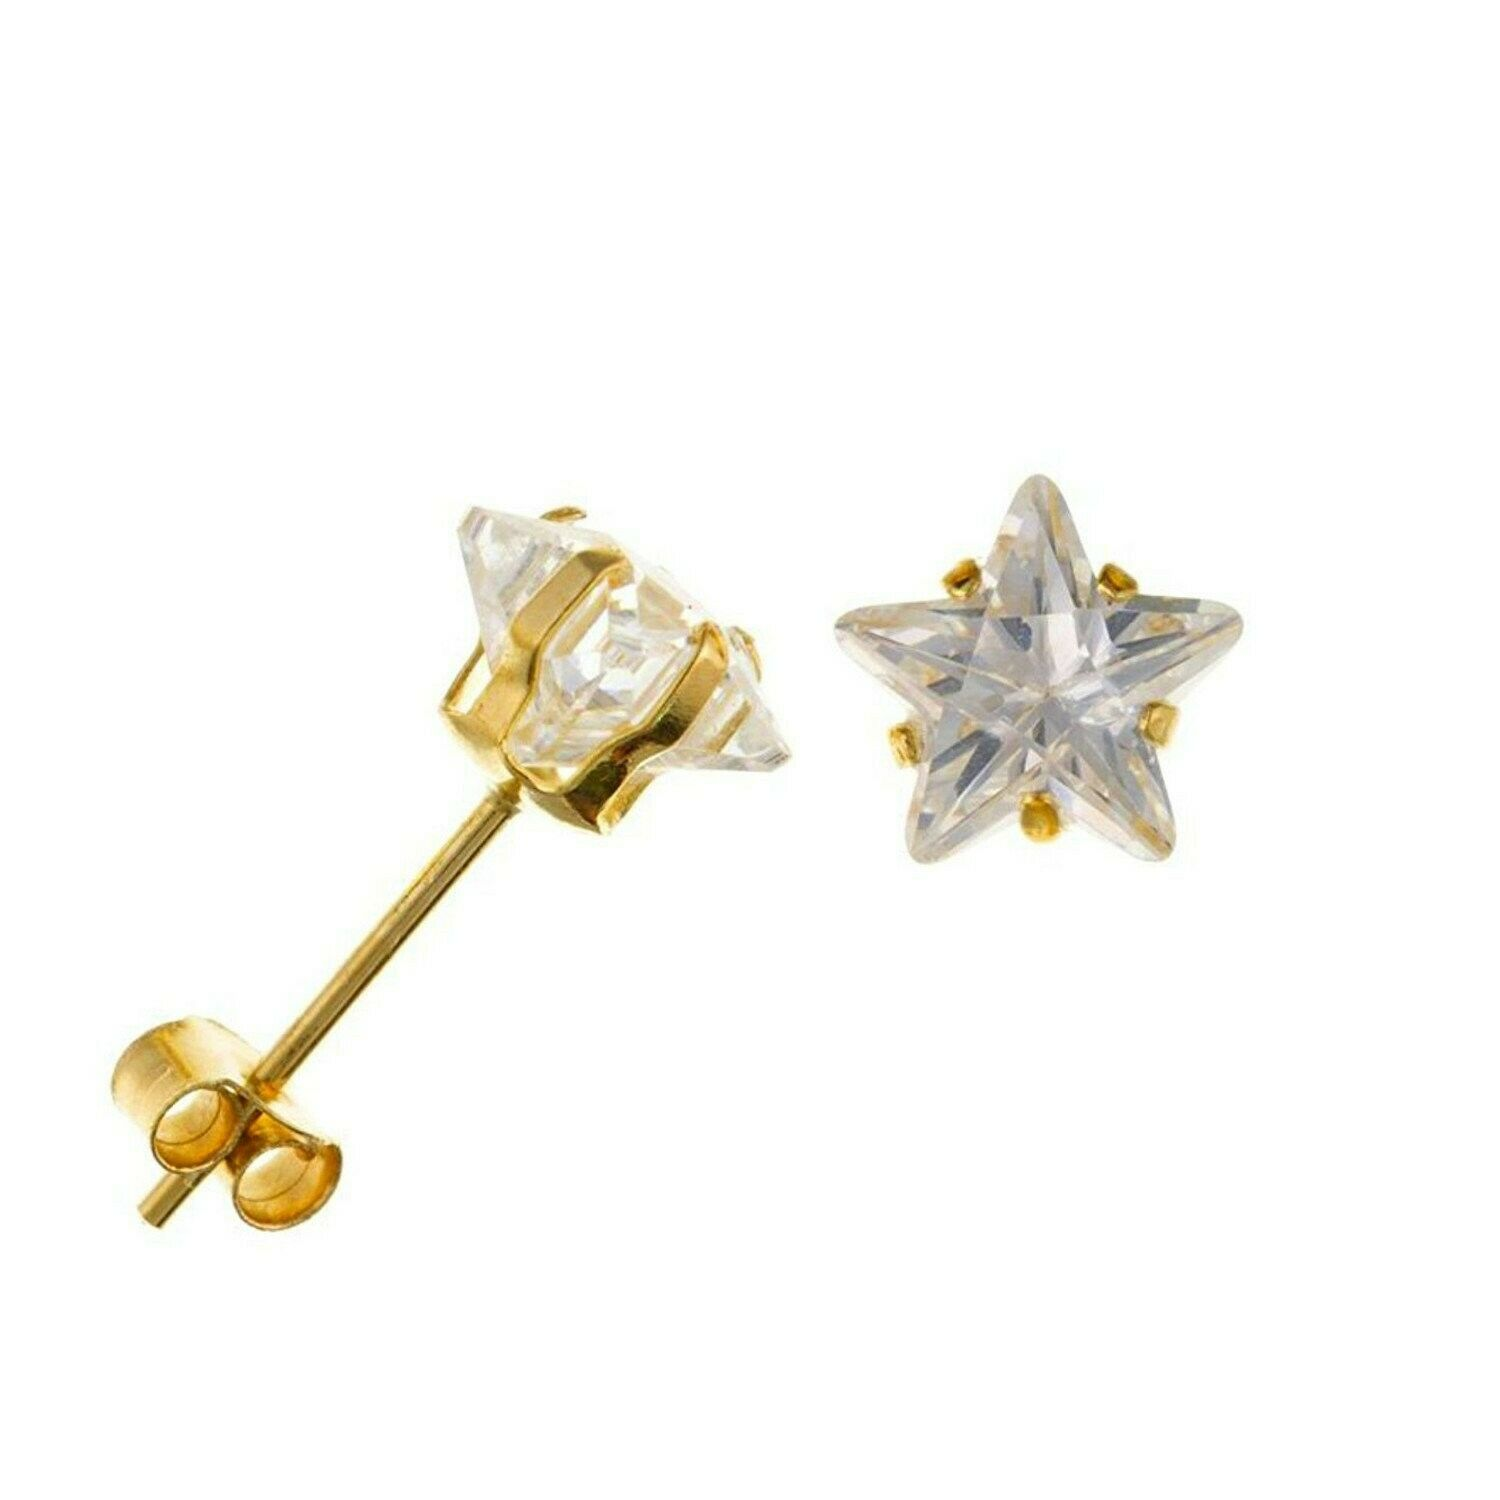 CZ star earrings 9ct gold